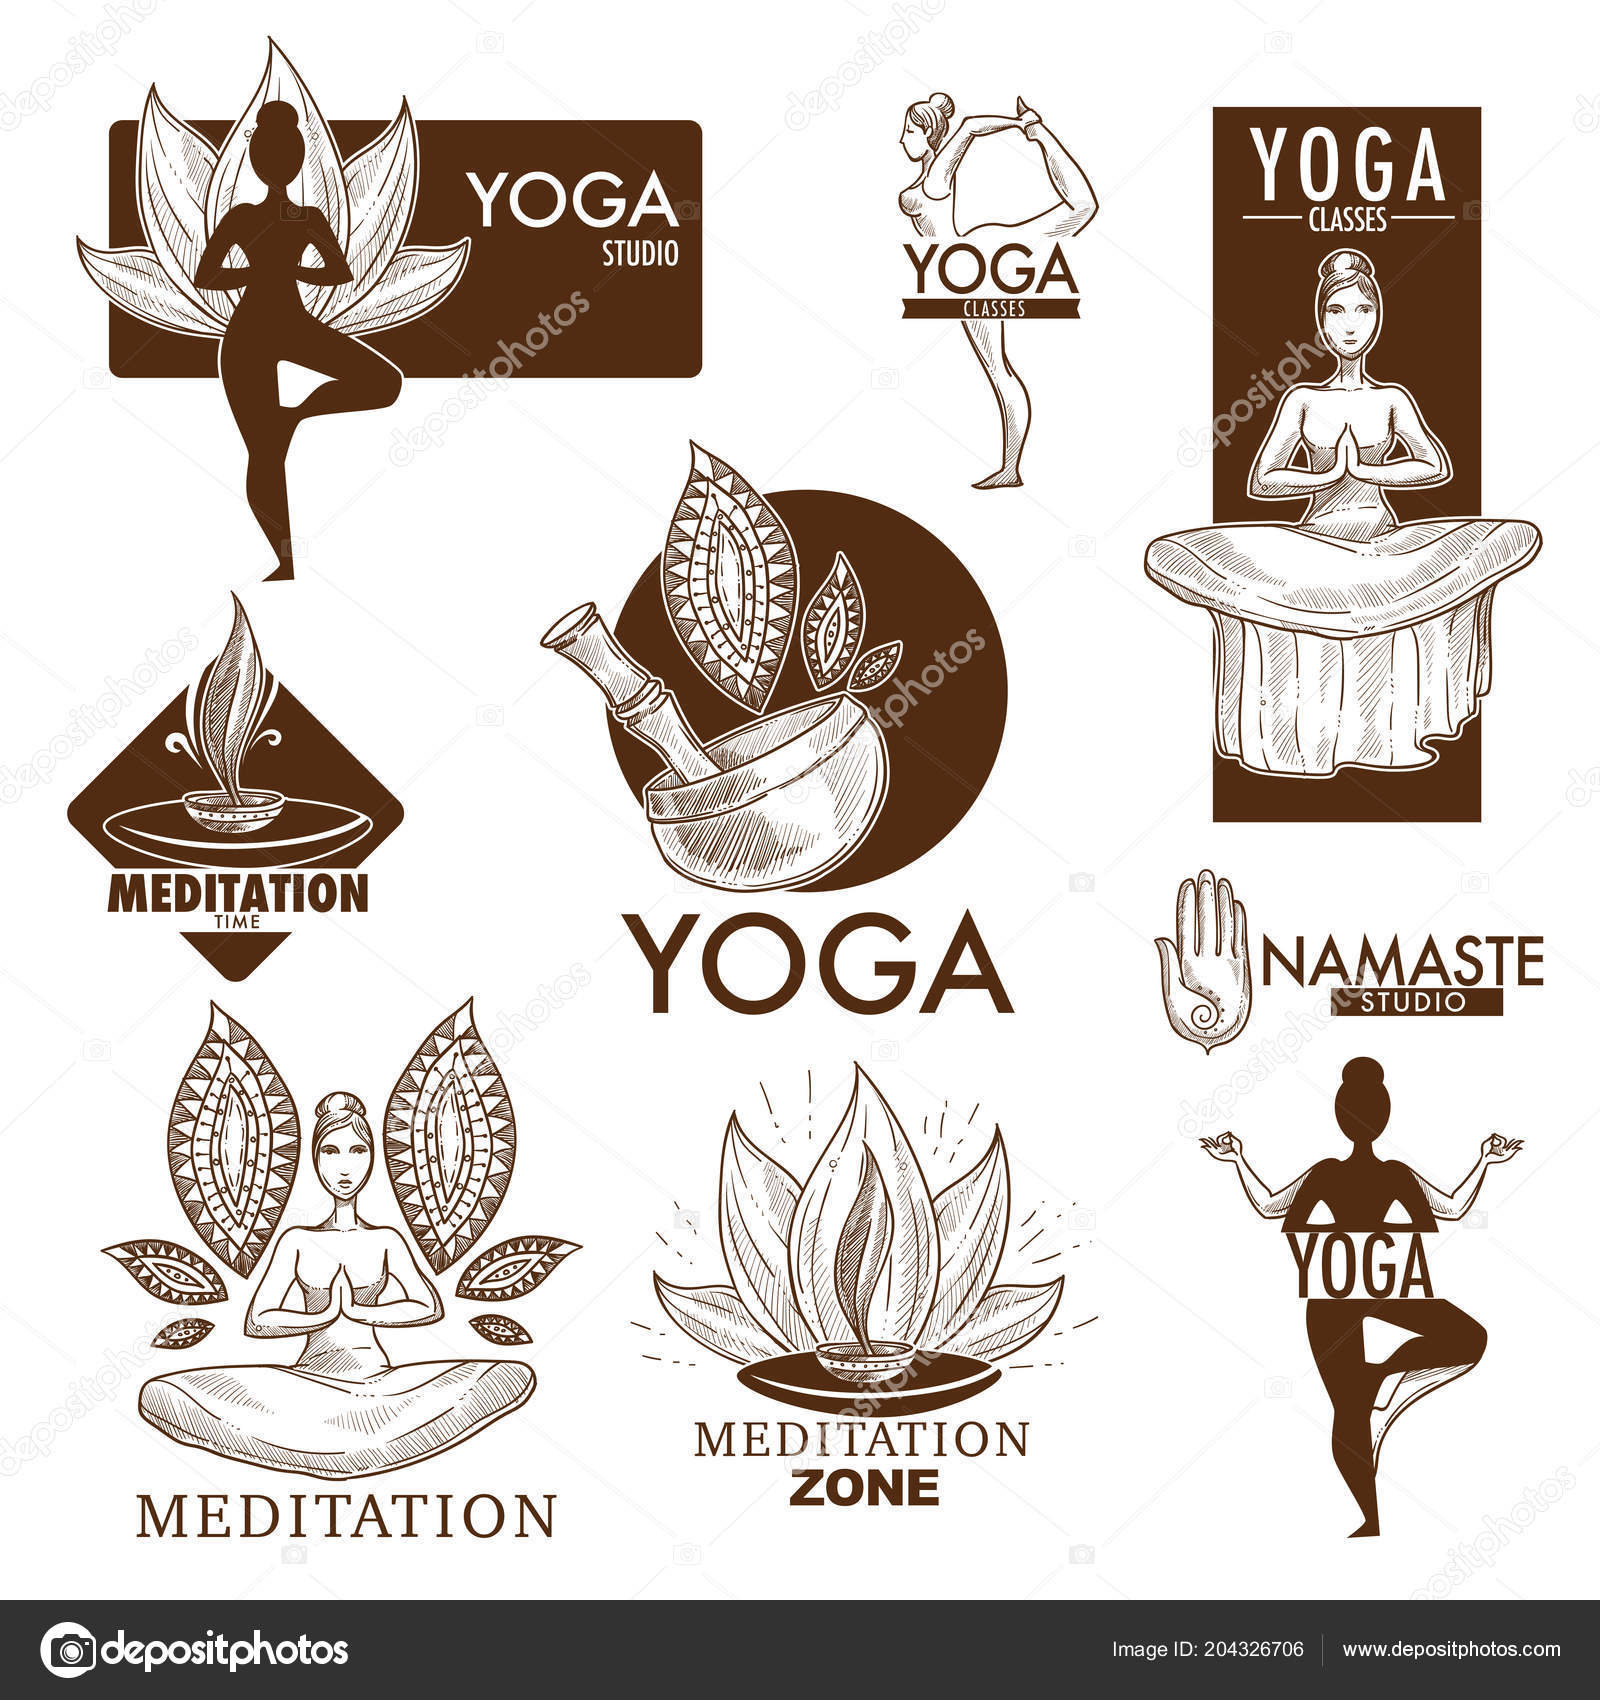 Yoga Studio Logo Sketch Zen Meditation Club Yoga Classes Stock Vector C Sonulkaster 204326706